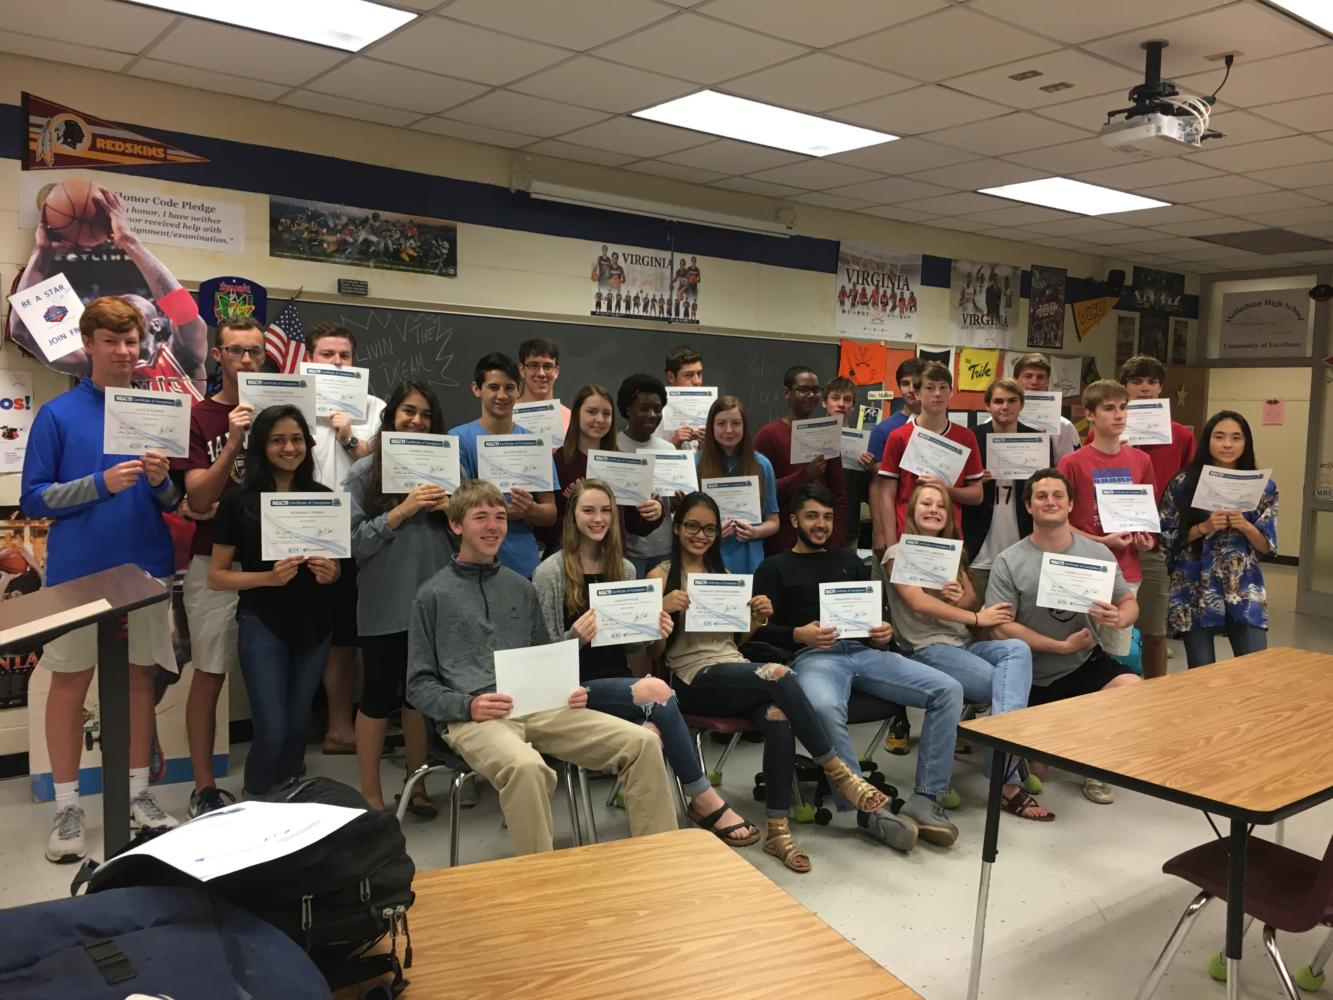 Congratulations to the following 26 students in Mrs. Mullins' Honors Accounting class, who received their NOCTI Accounting certification this spring and passed this exam.